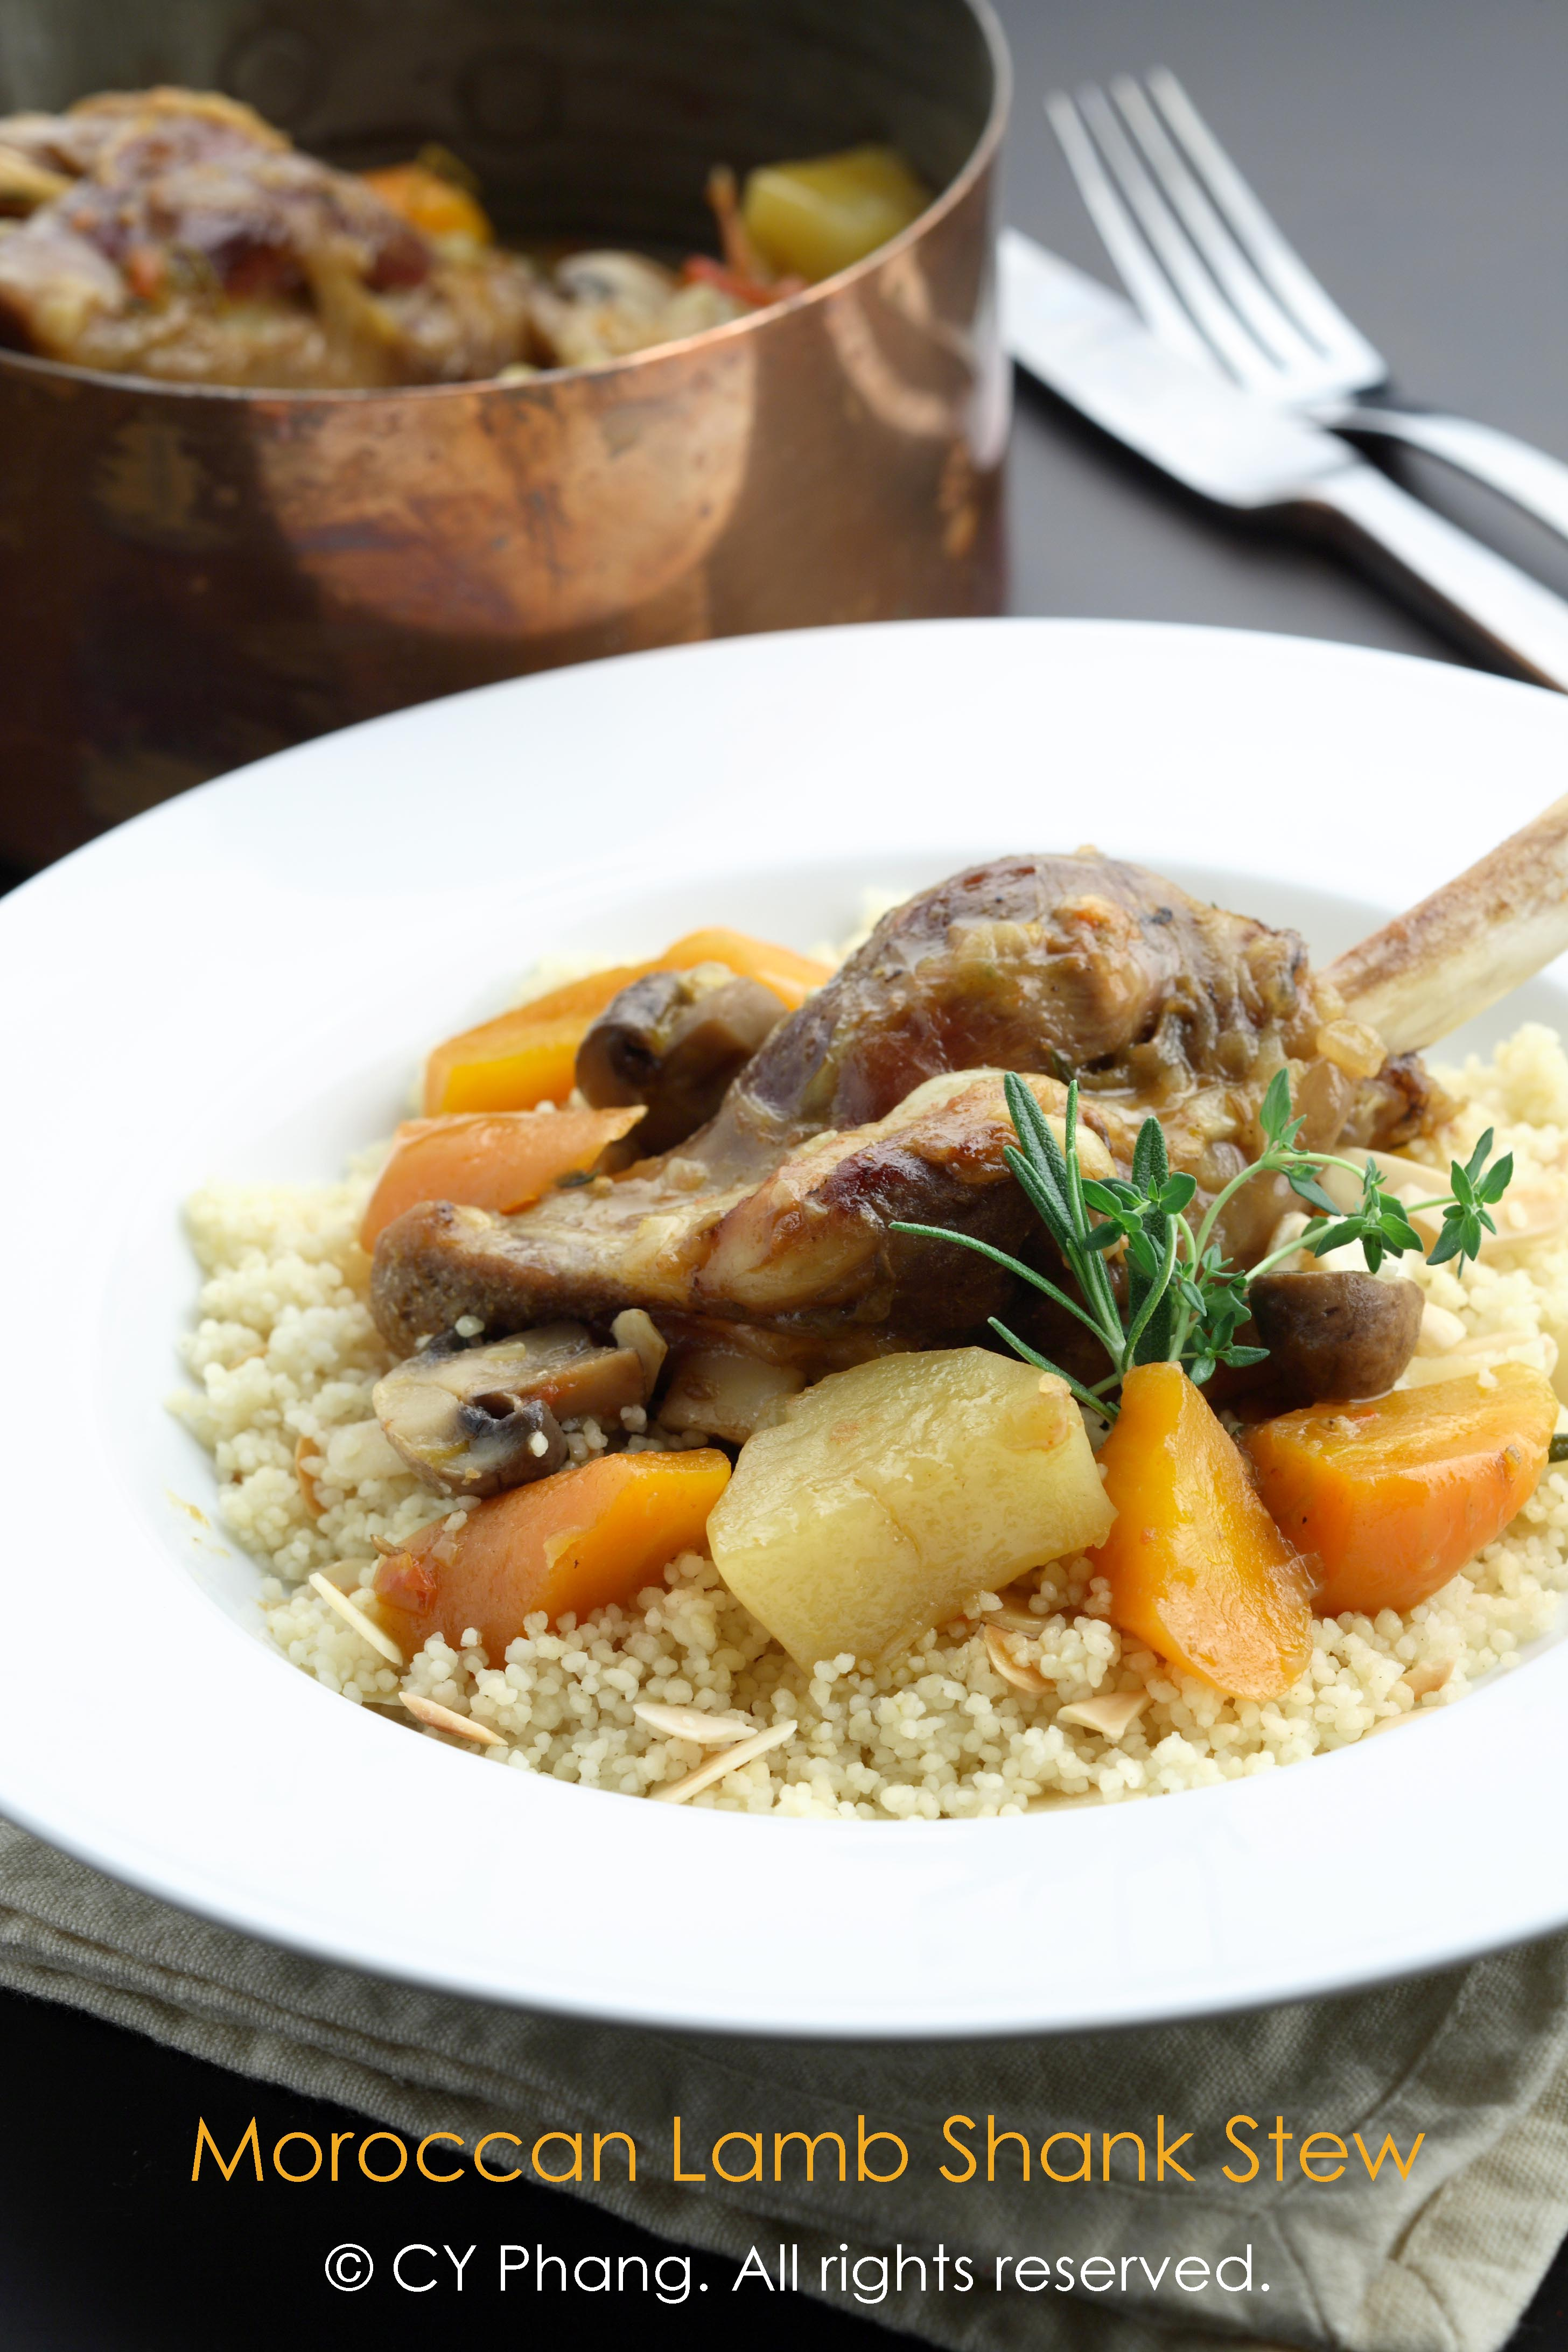 Moroccan lamb shank stew with vegetables-IMG_6433-custom copy